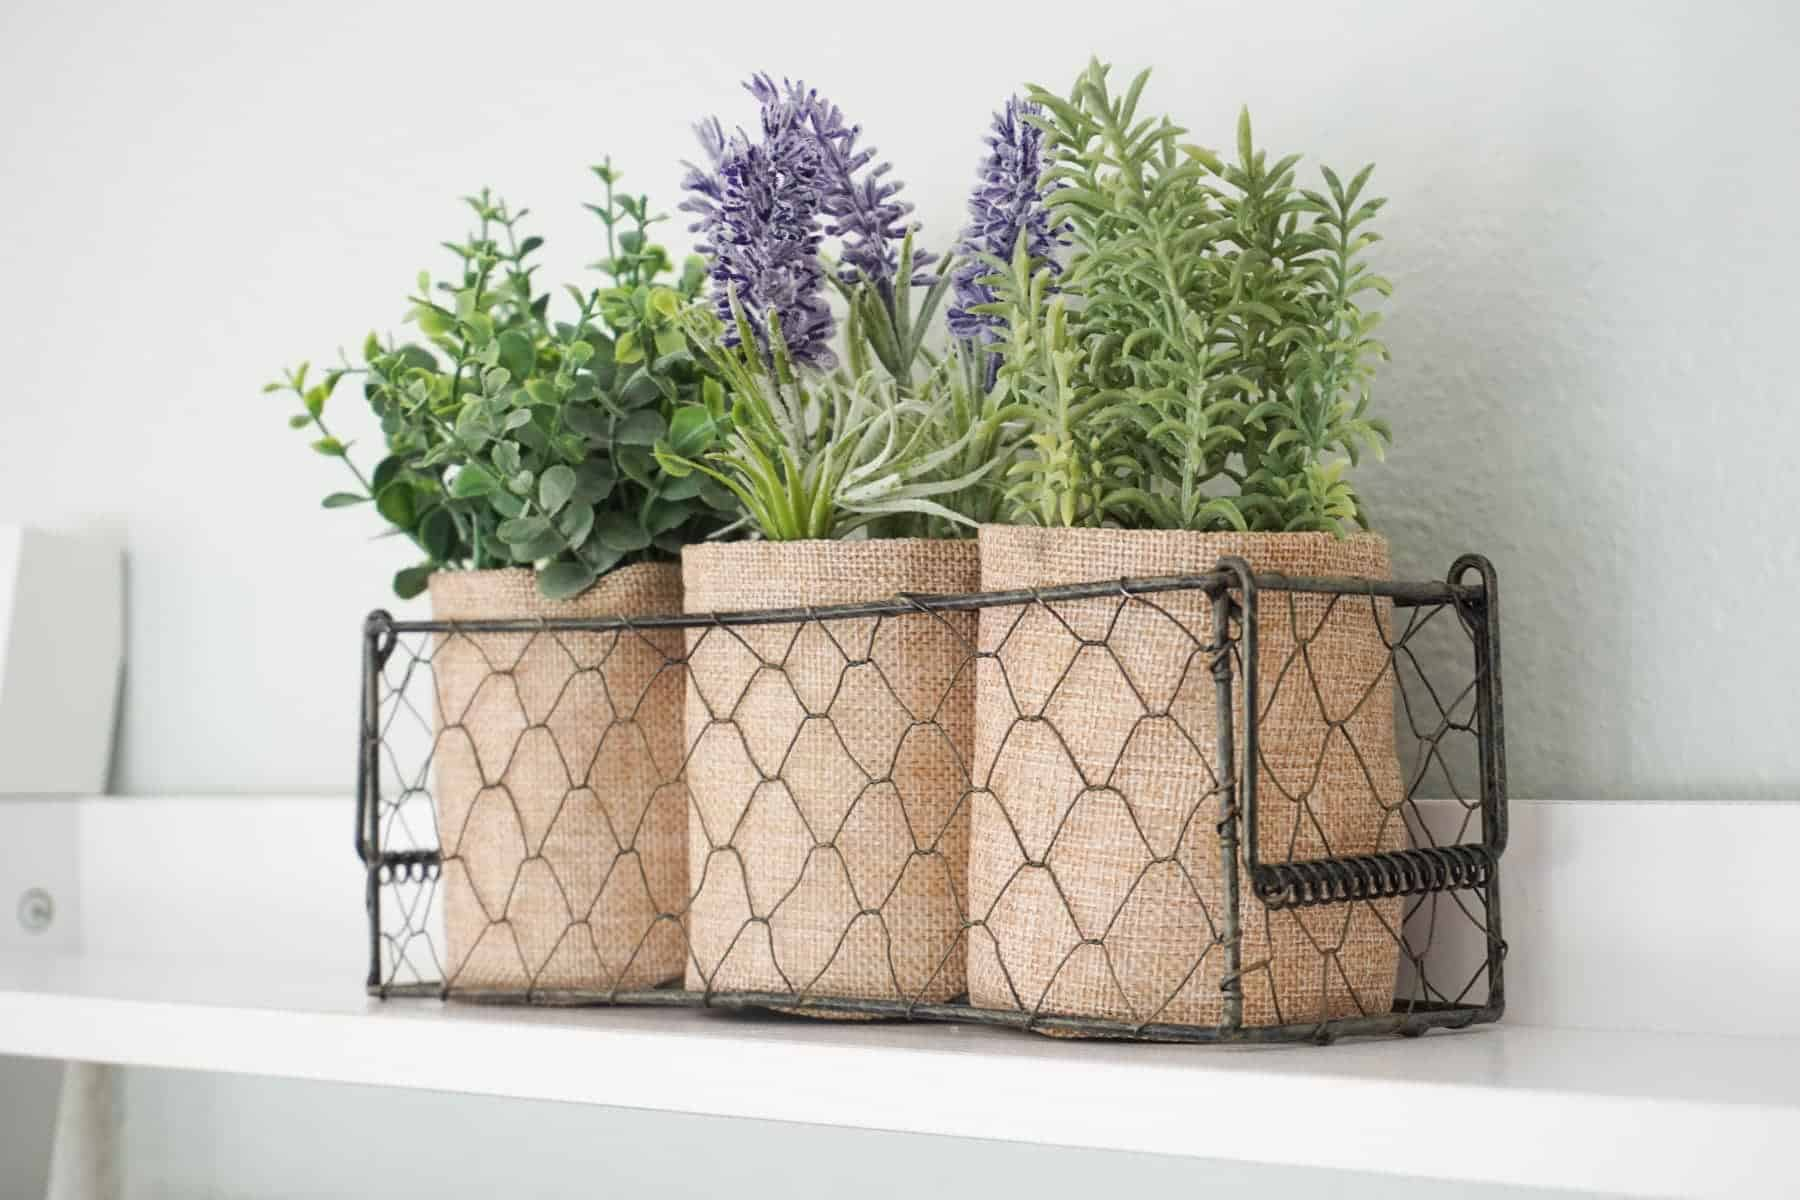 Decorating With Lavender Flowers Planted In Burlap Sacks And Placed In A Chicken Wire Basket